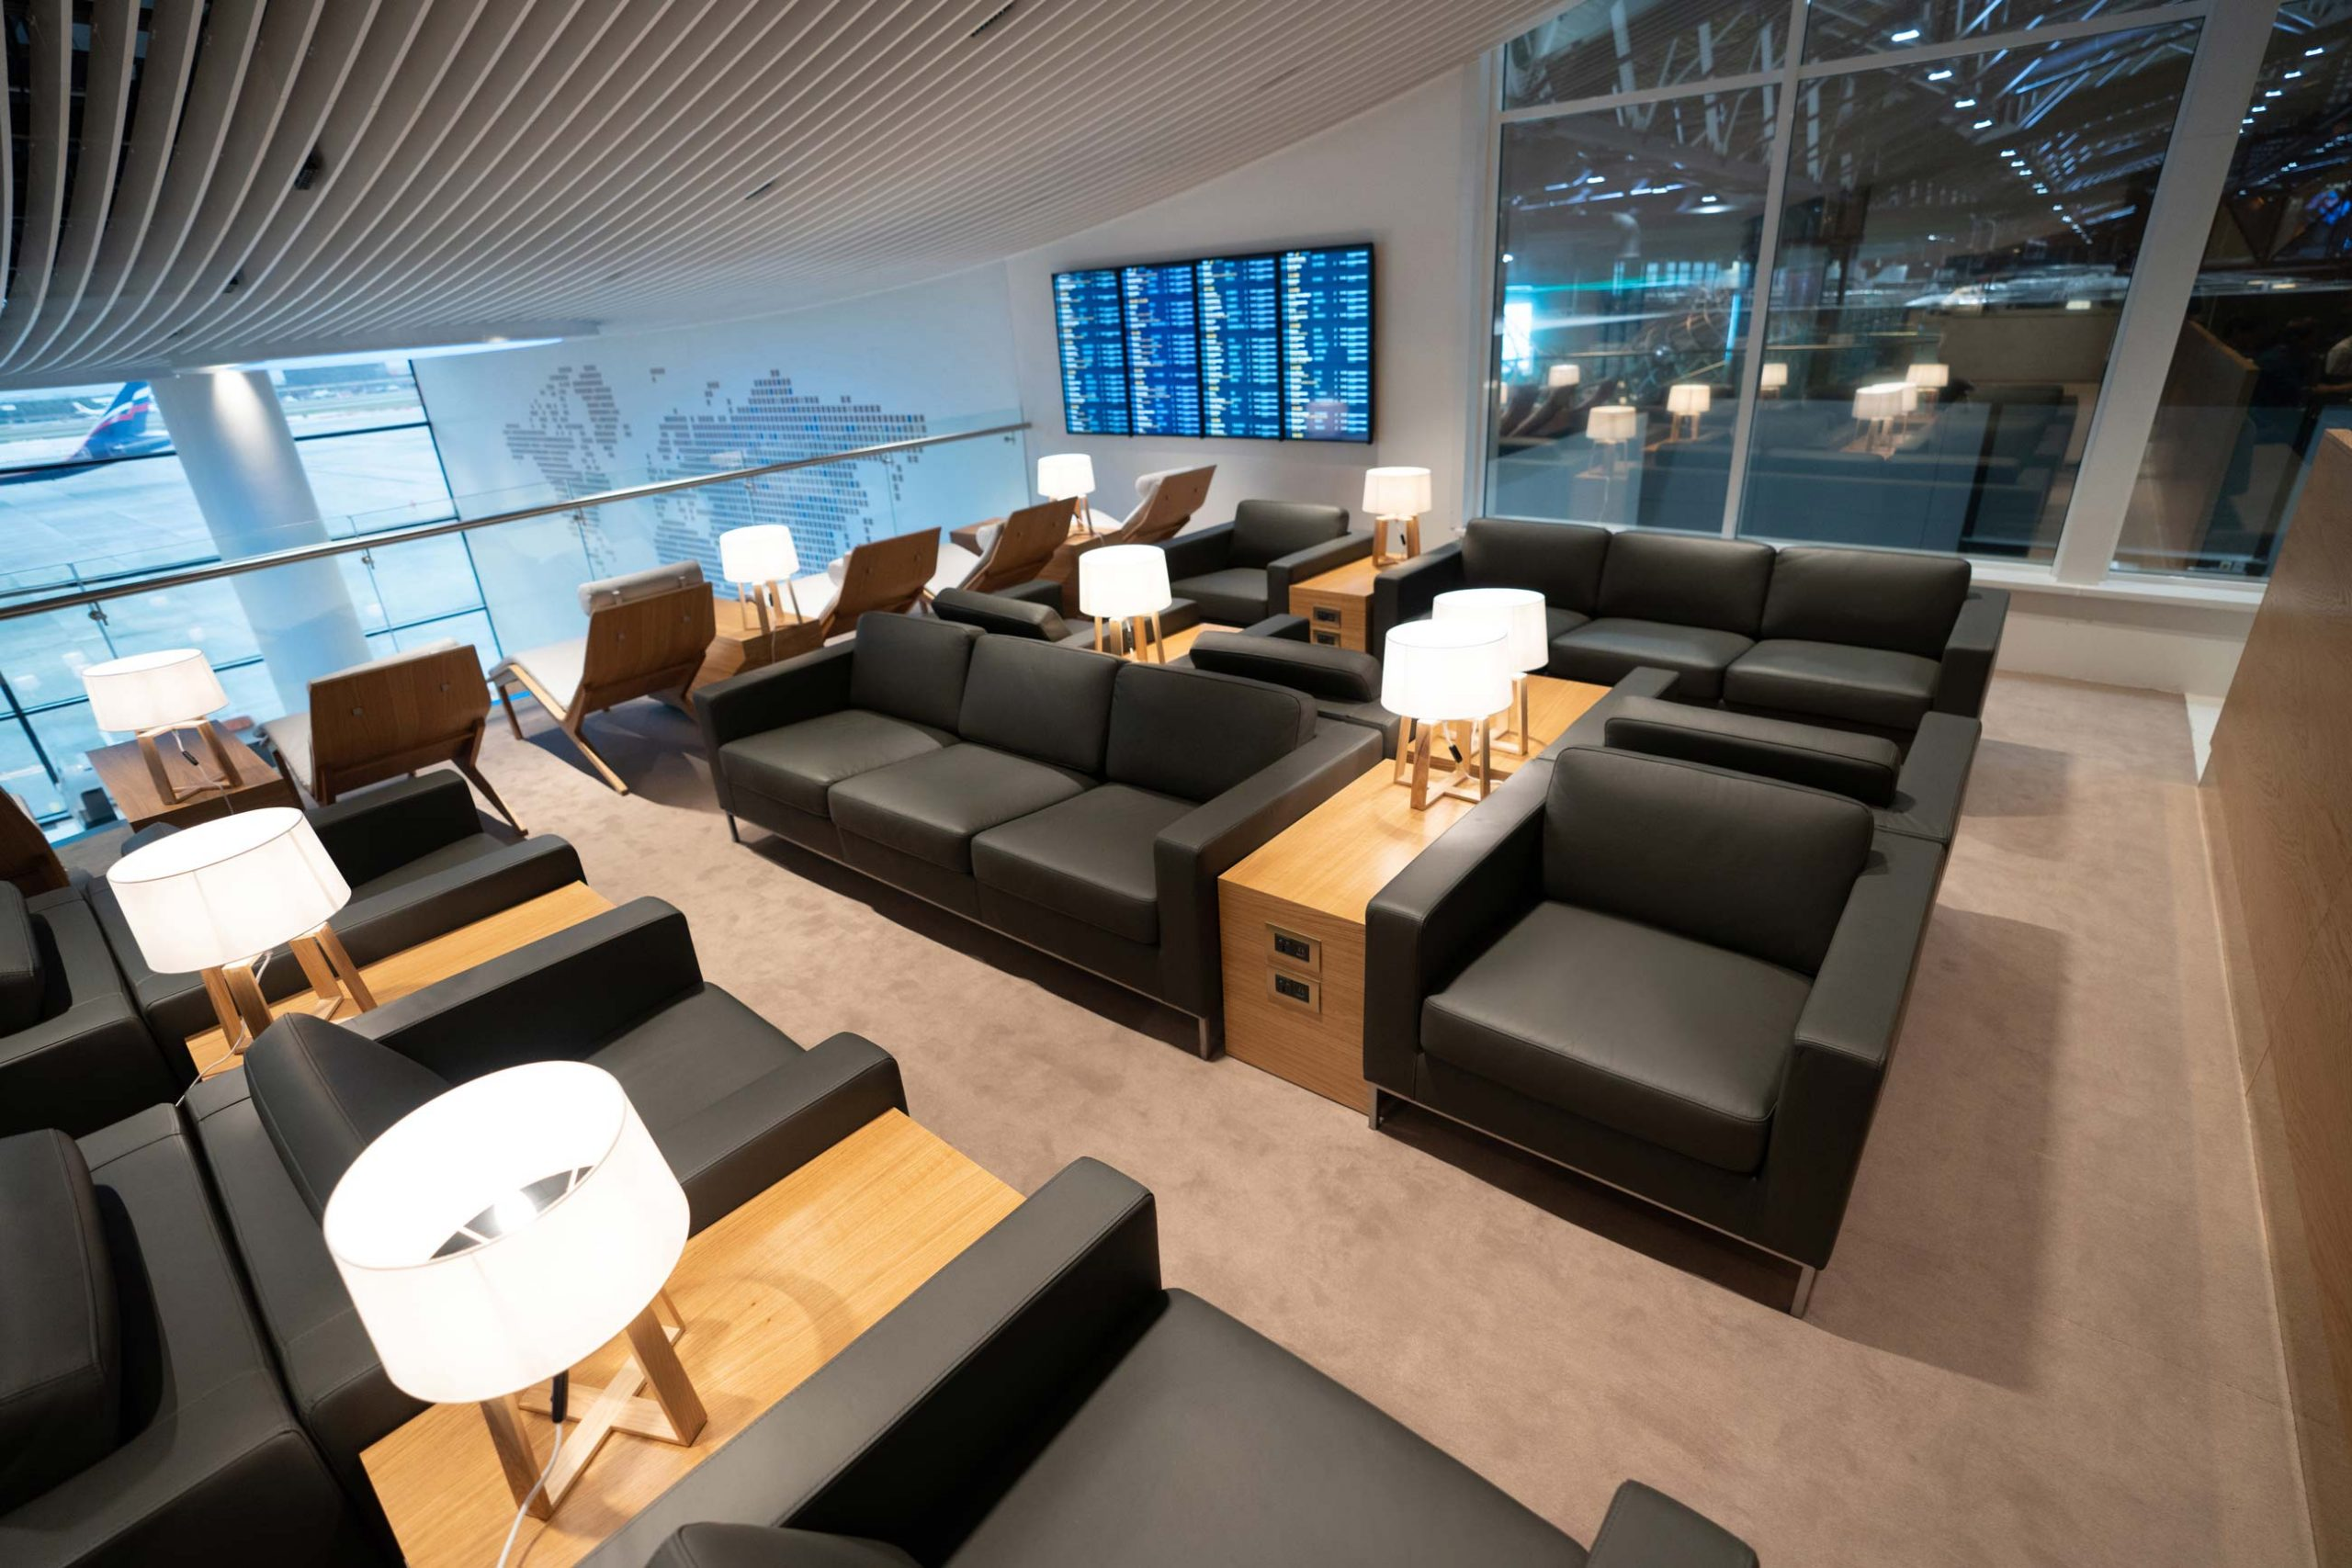 Airport lounge Access Across The World